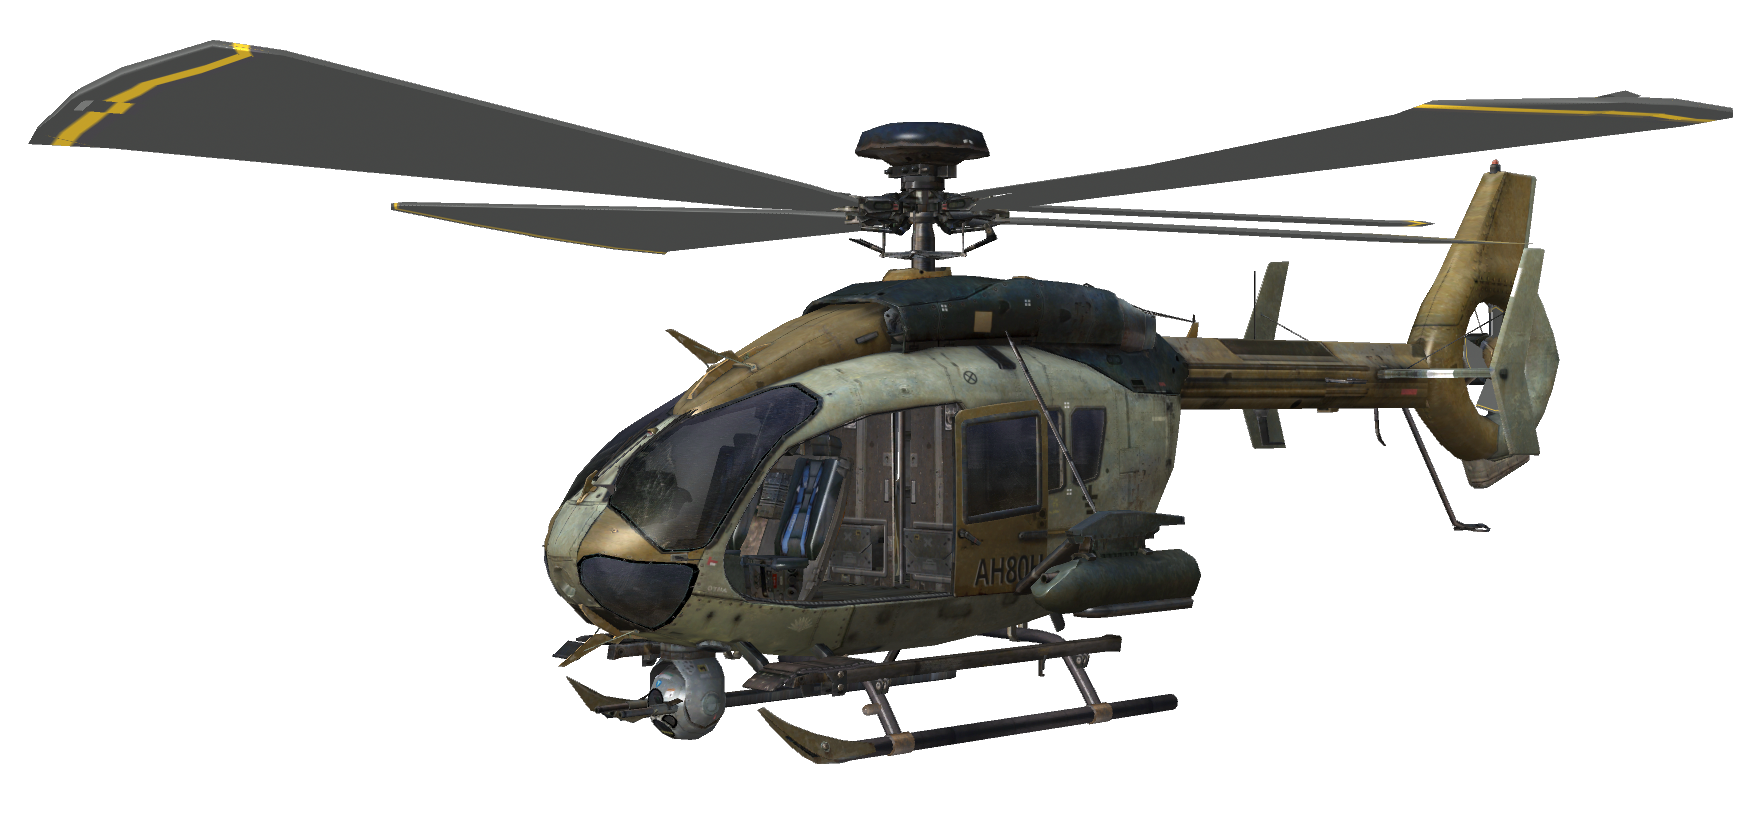 half life helicopter with Talk Ec 635 on Overwatch Cosplays That Are Solid Waifu Material further What Are All The Known Lightsaber Designs besides Sr 71a taking off with afterburner raf mildenhall 1983 108119 further 8745 Hl 2 Vert V1 likewise File Hind Cockpit BO.